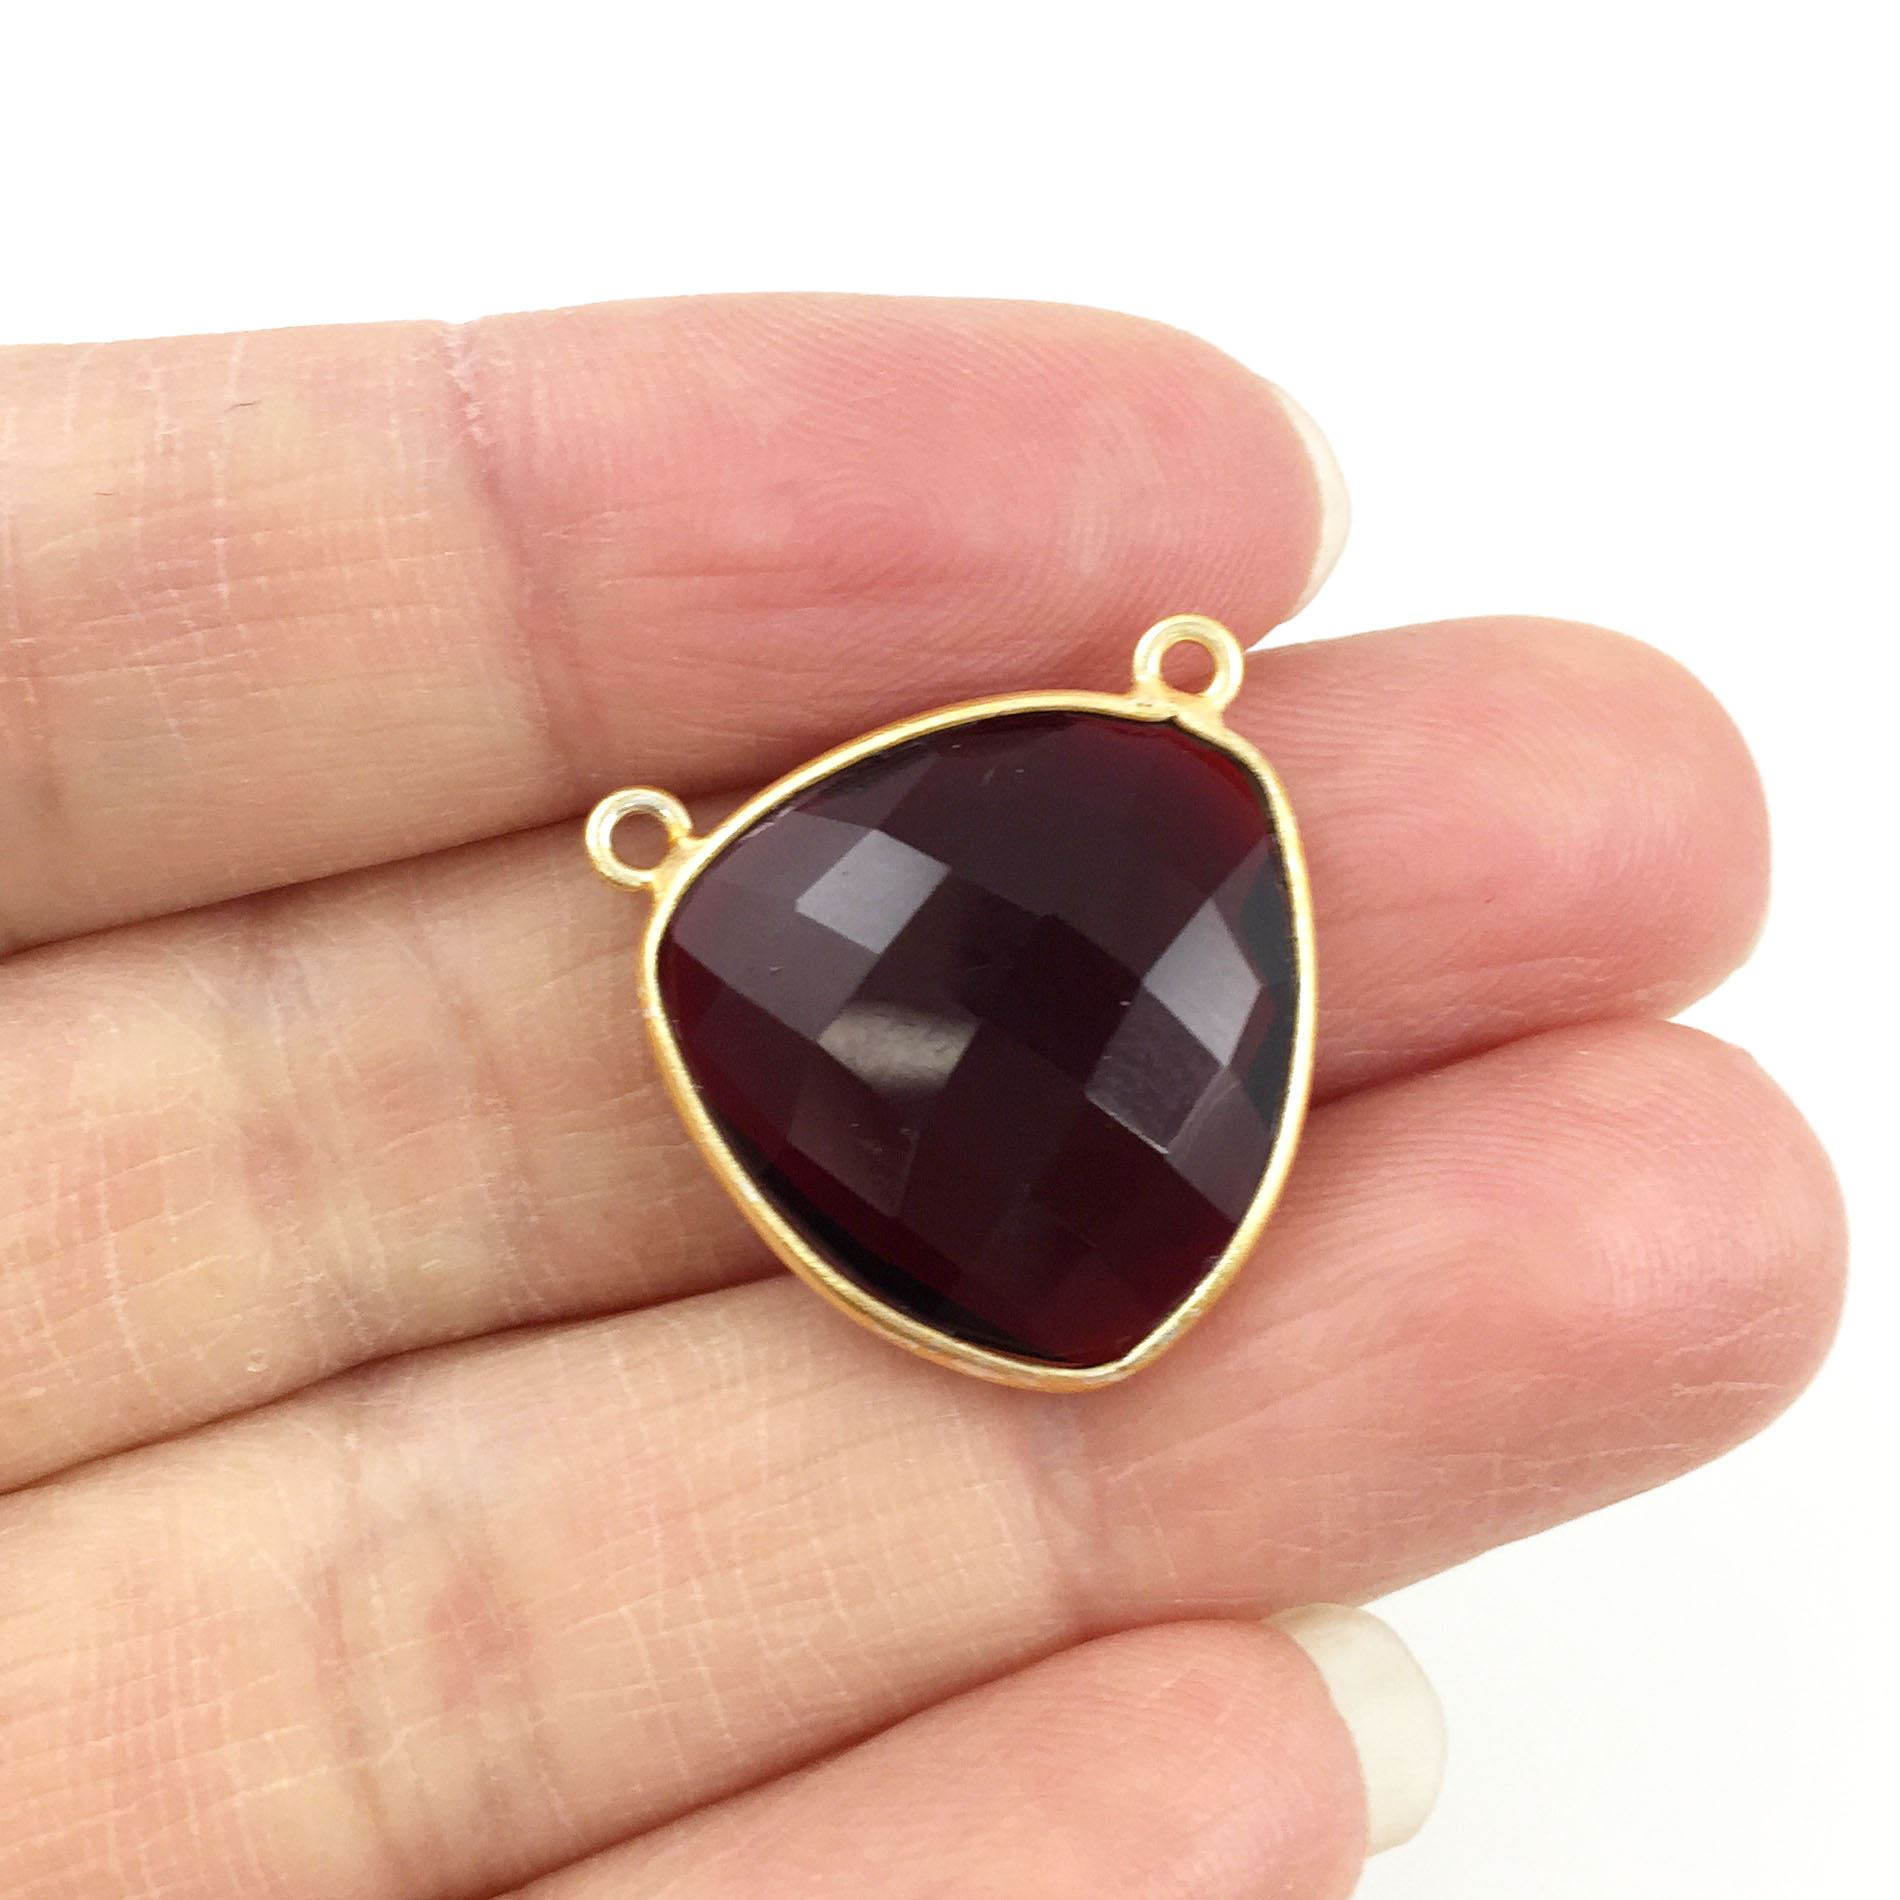 Bezel Gemstone Connector Pendant - Garnet Quartz - Gold plated Sterling Silver - Large Trillion Shaped Faceted - 18 mm - 1 piece